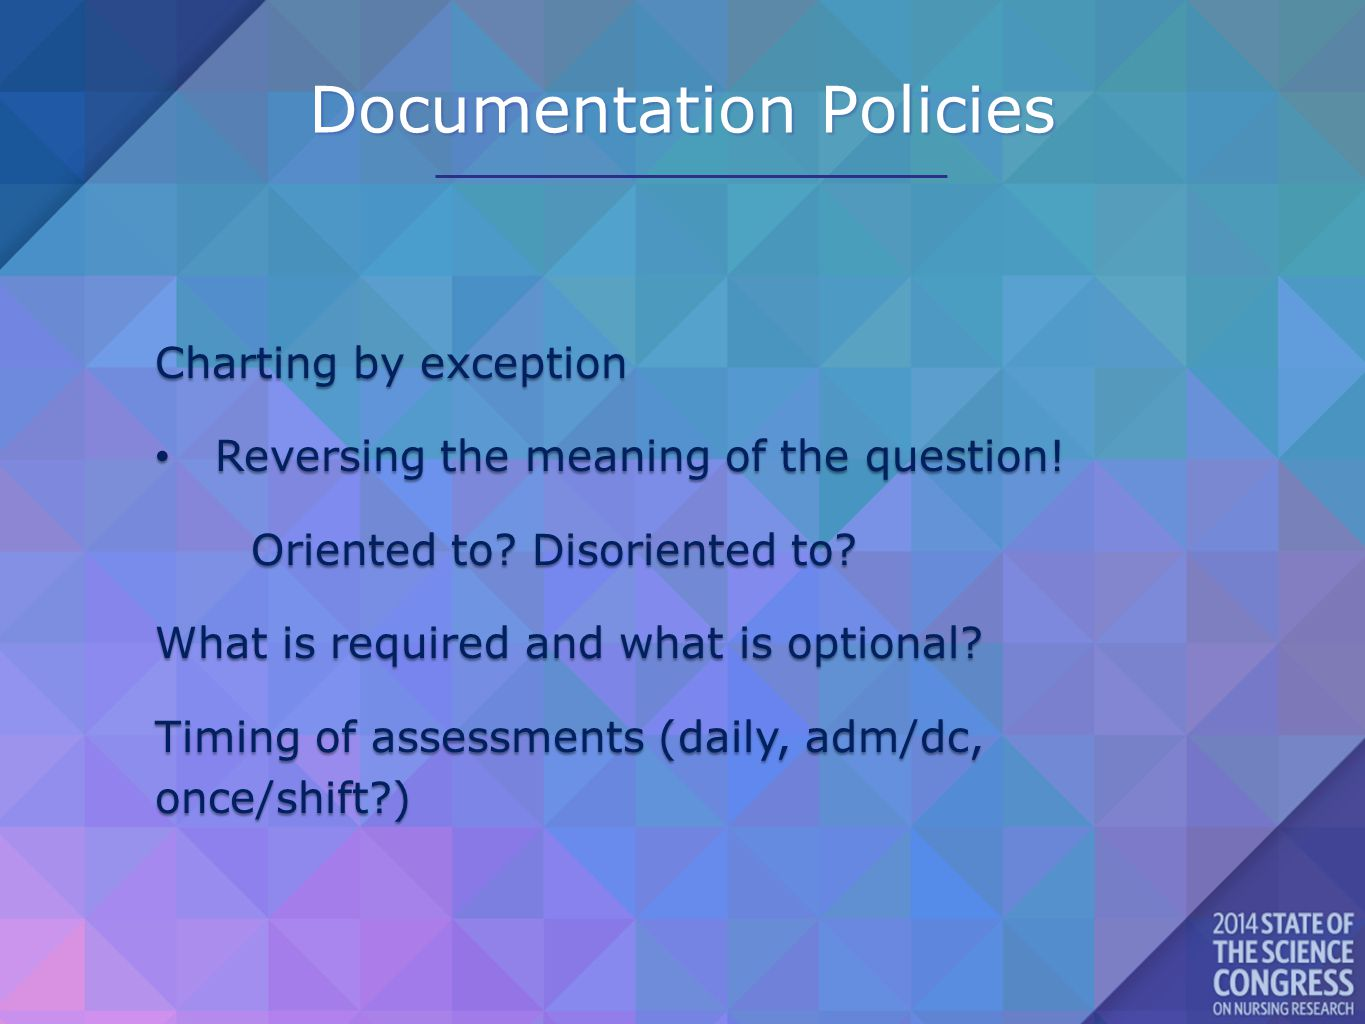 Documentation Policies Charting by exception Reversing the meaning of the question! Reversing the meaning of the question! Oriented to? Disoriented to